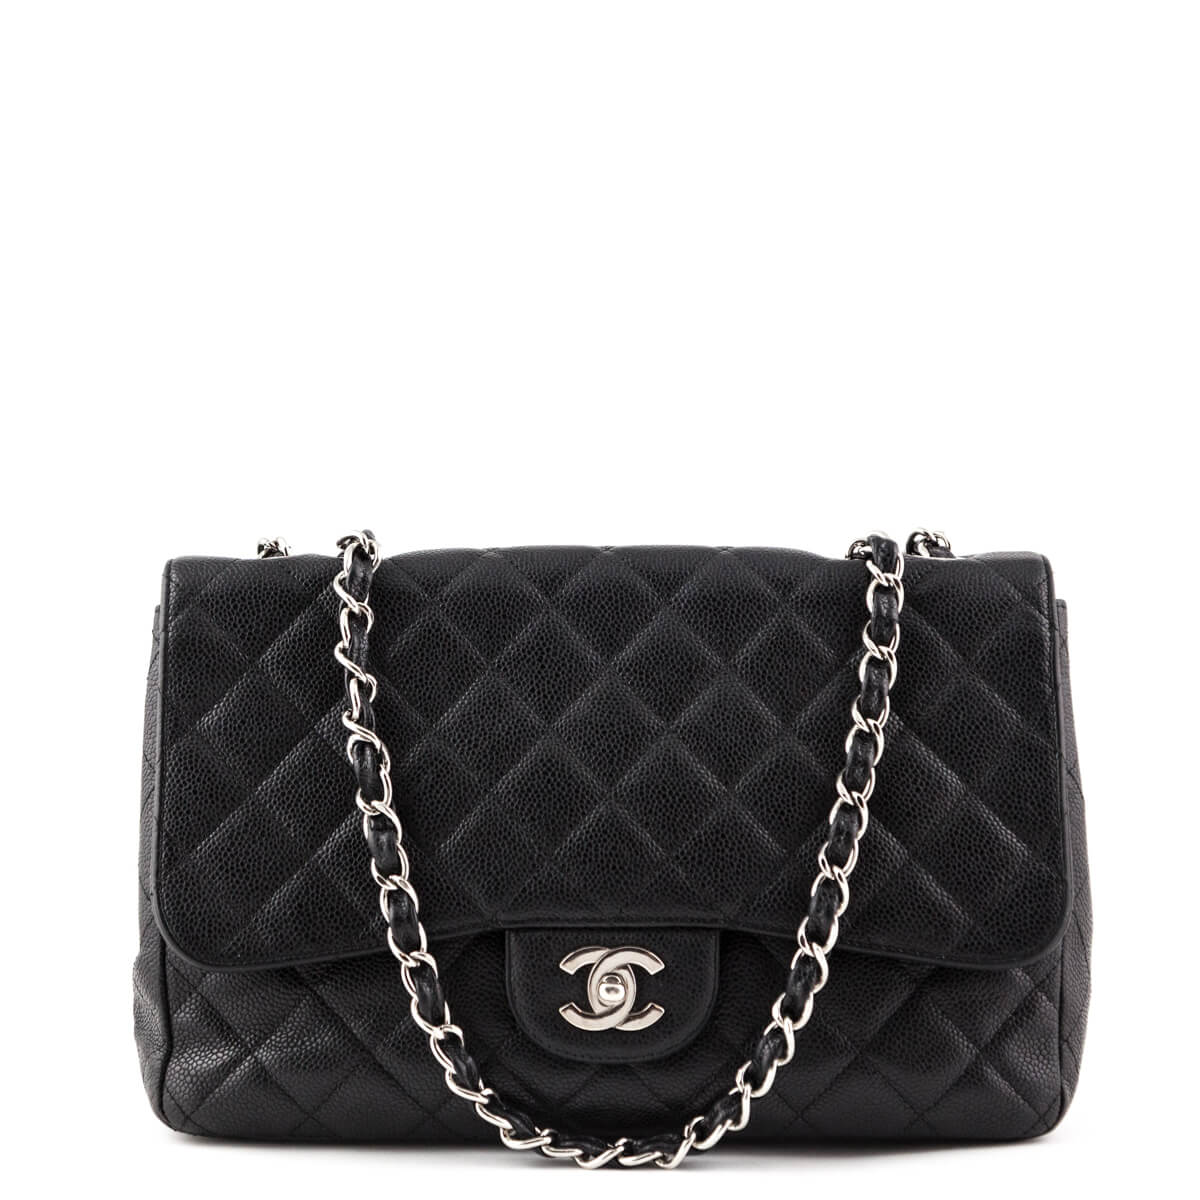 80be67941e27 Chanel Black Caviar Single Flap Jumbo Bag - LOVE that BAG - Preowned  Authentic Designer Handbags ...